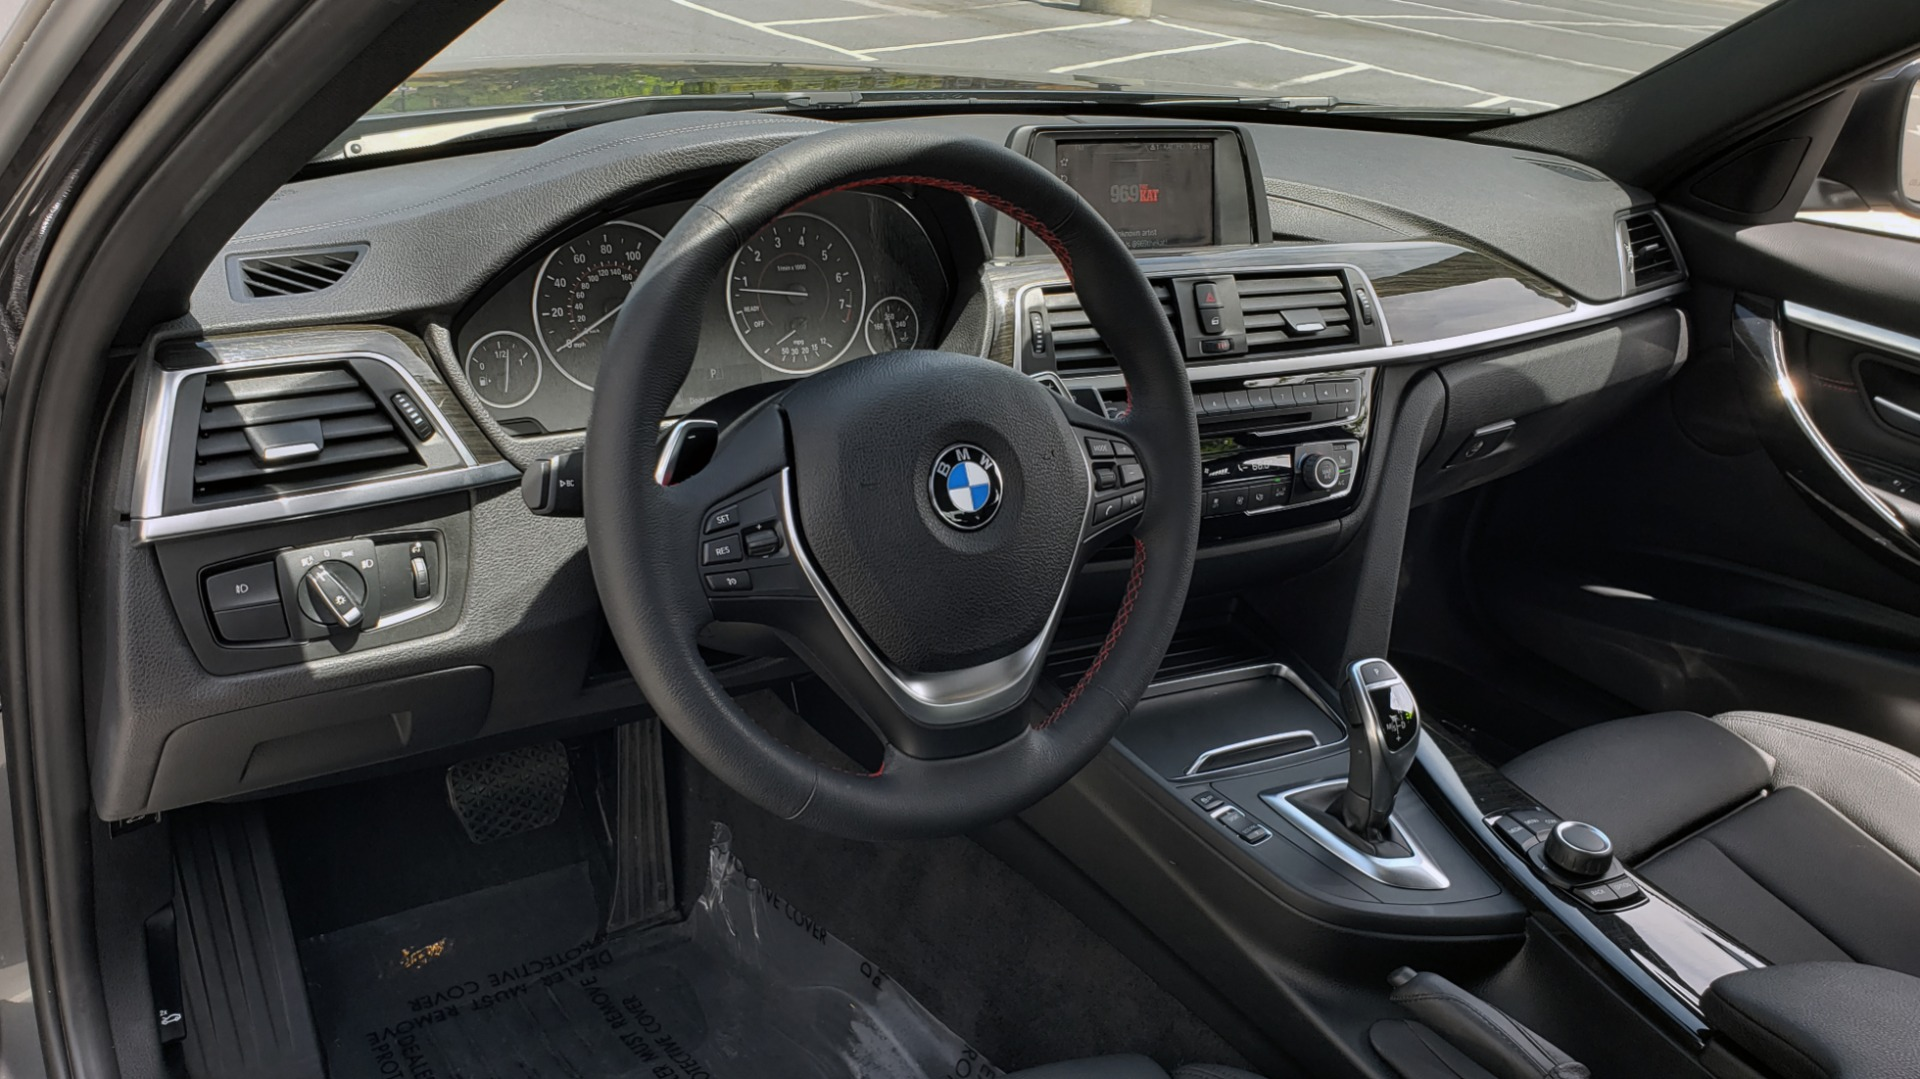 Used 2018 BMW 3 SERIES 330I XDRIVE / CONV PKG / SUNROOF / SPORT STS / HTD STS / REARVIEW for sale $28,495 at Formula Imports in Charlotte NC 28227 34